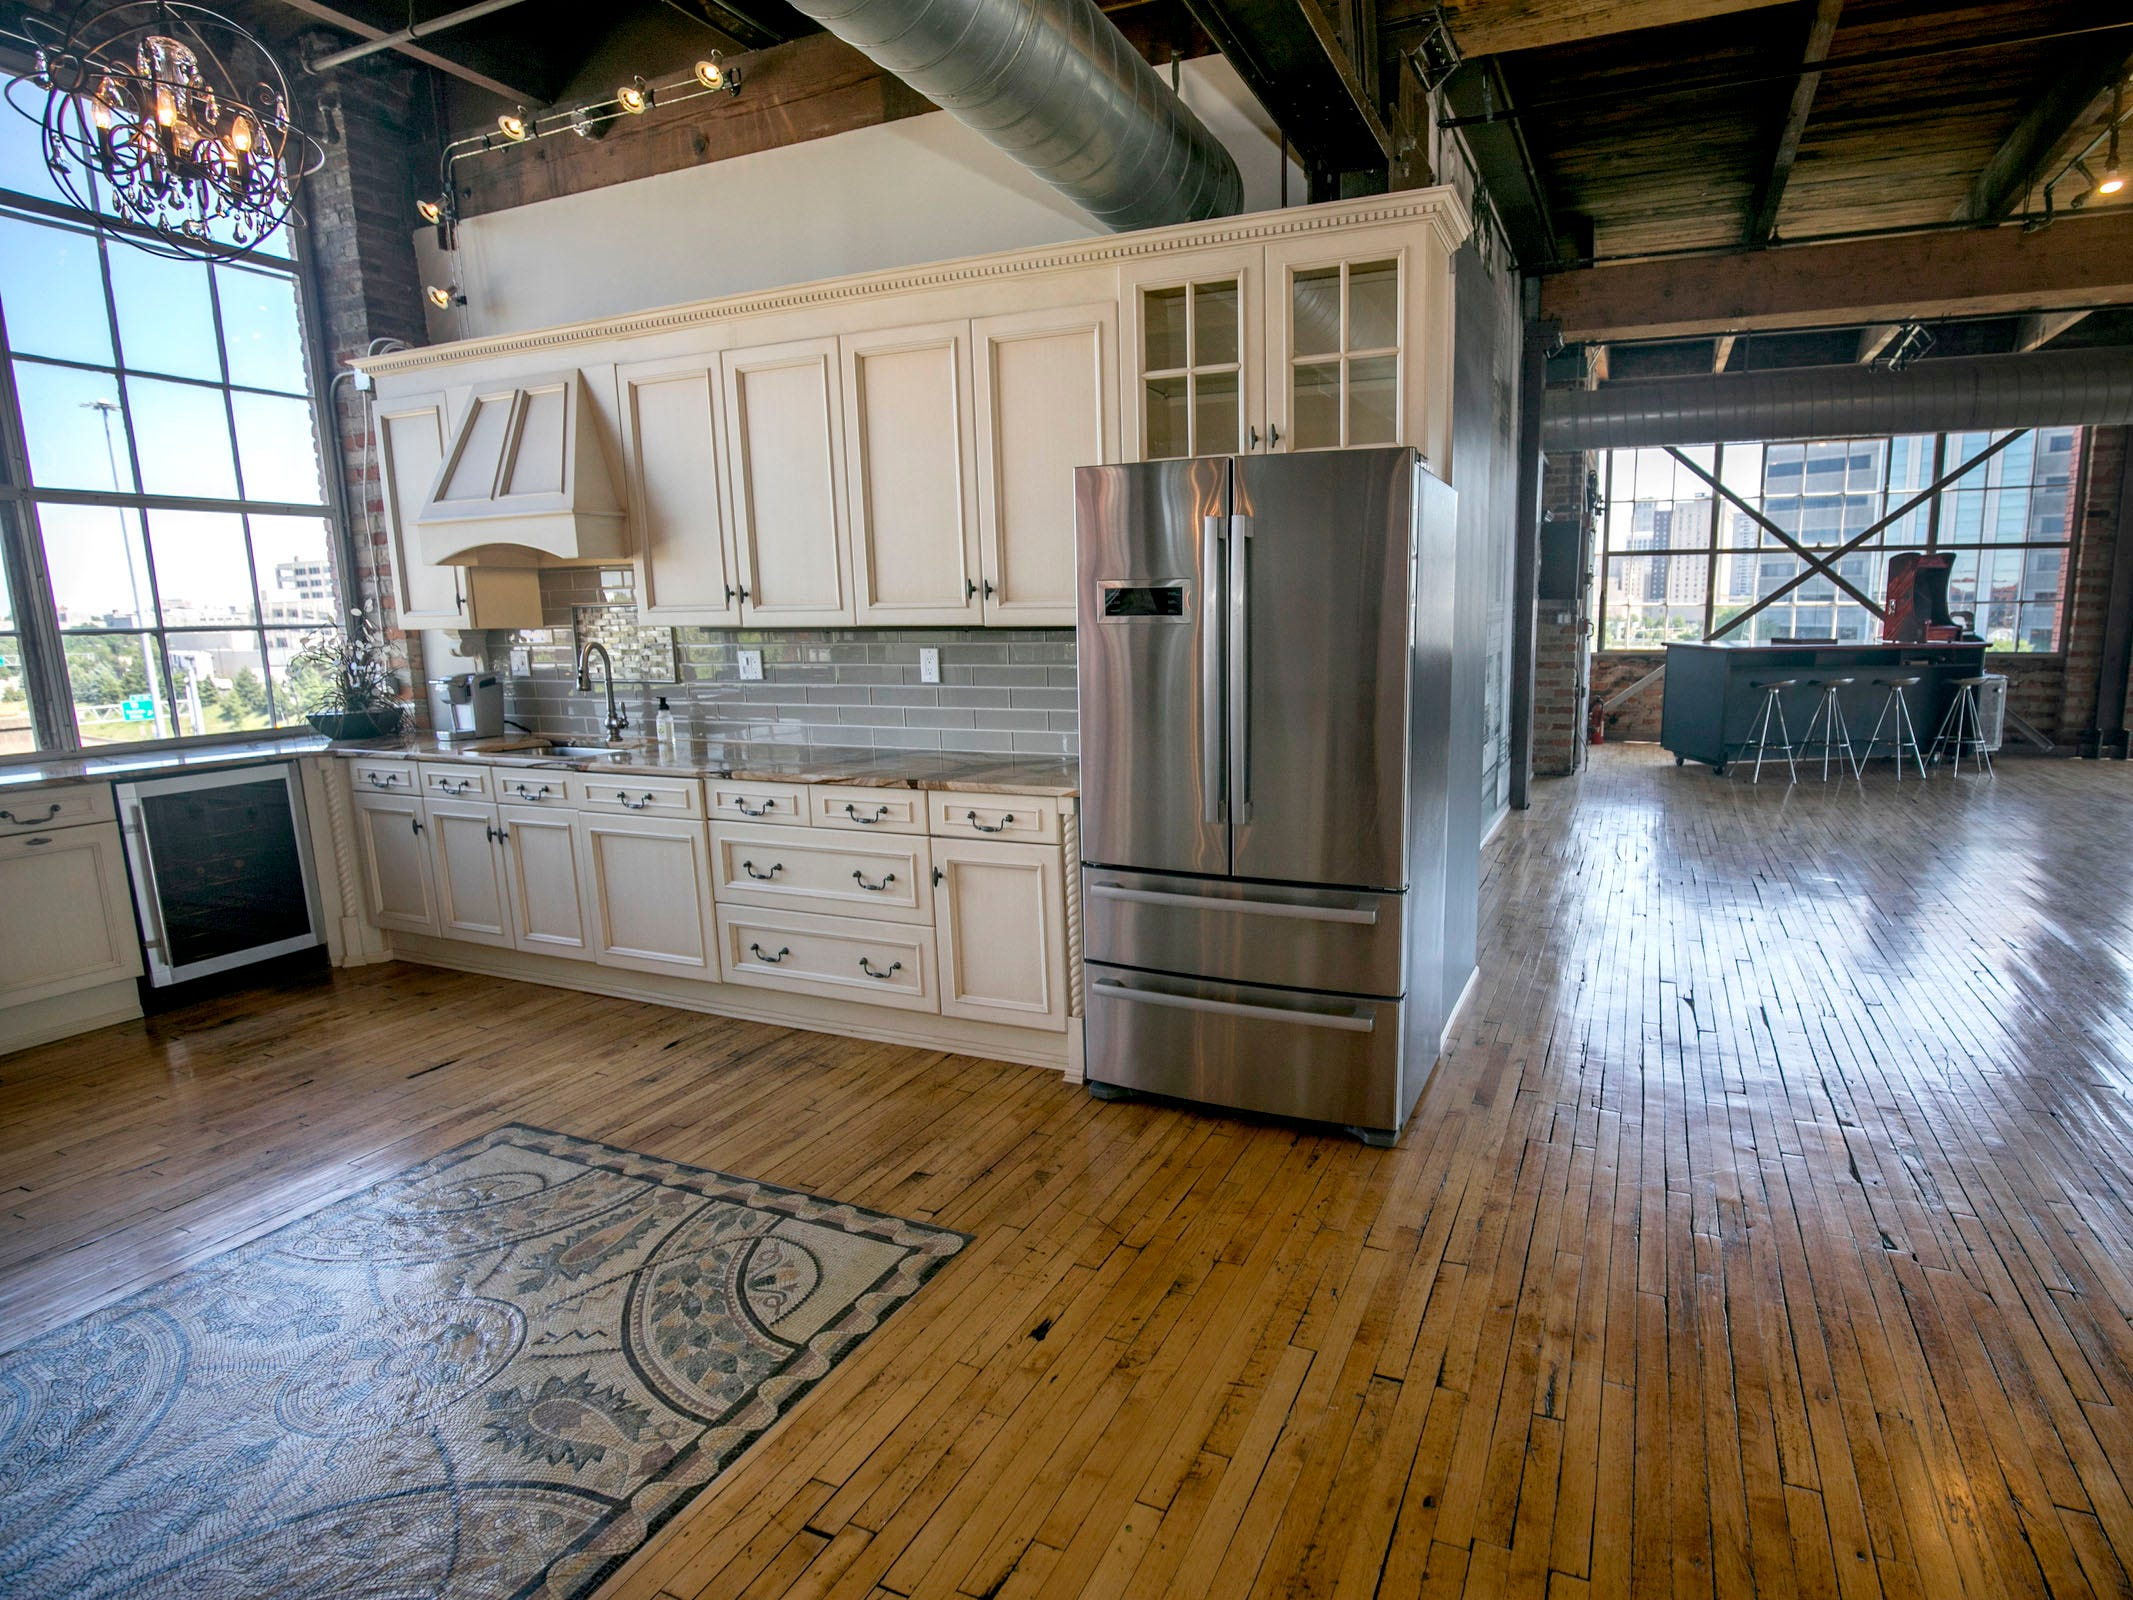 The large kitchen is new, with appliances by Wolf and Bosch. The floor design is mosaic with 41,000 pieces, commissioned by the previous owner.